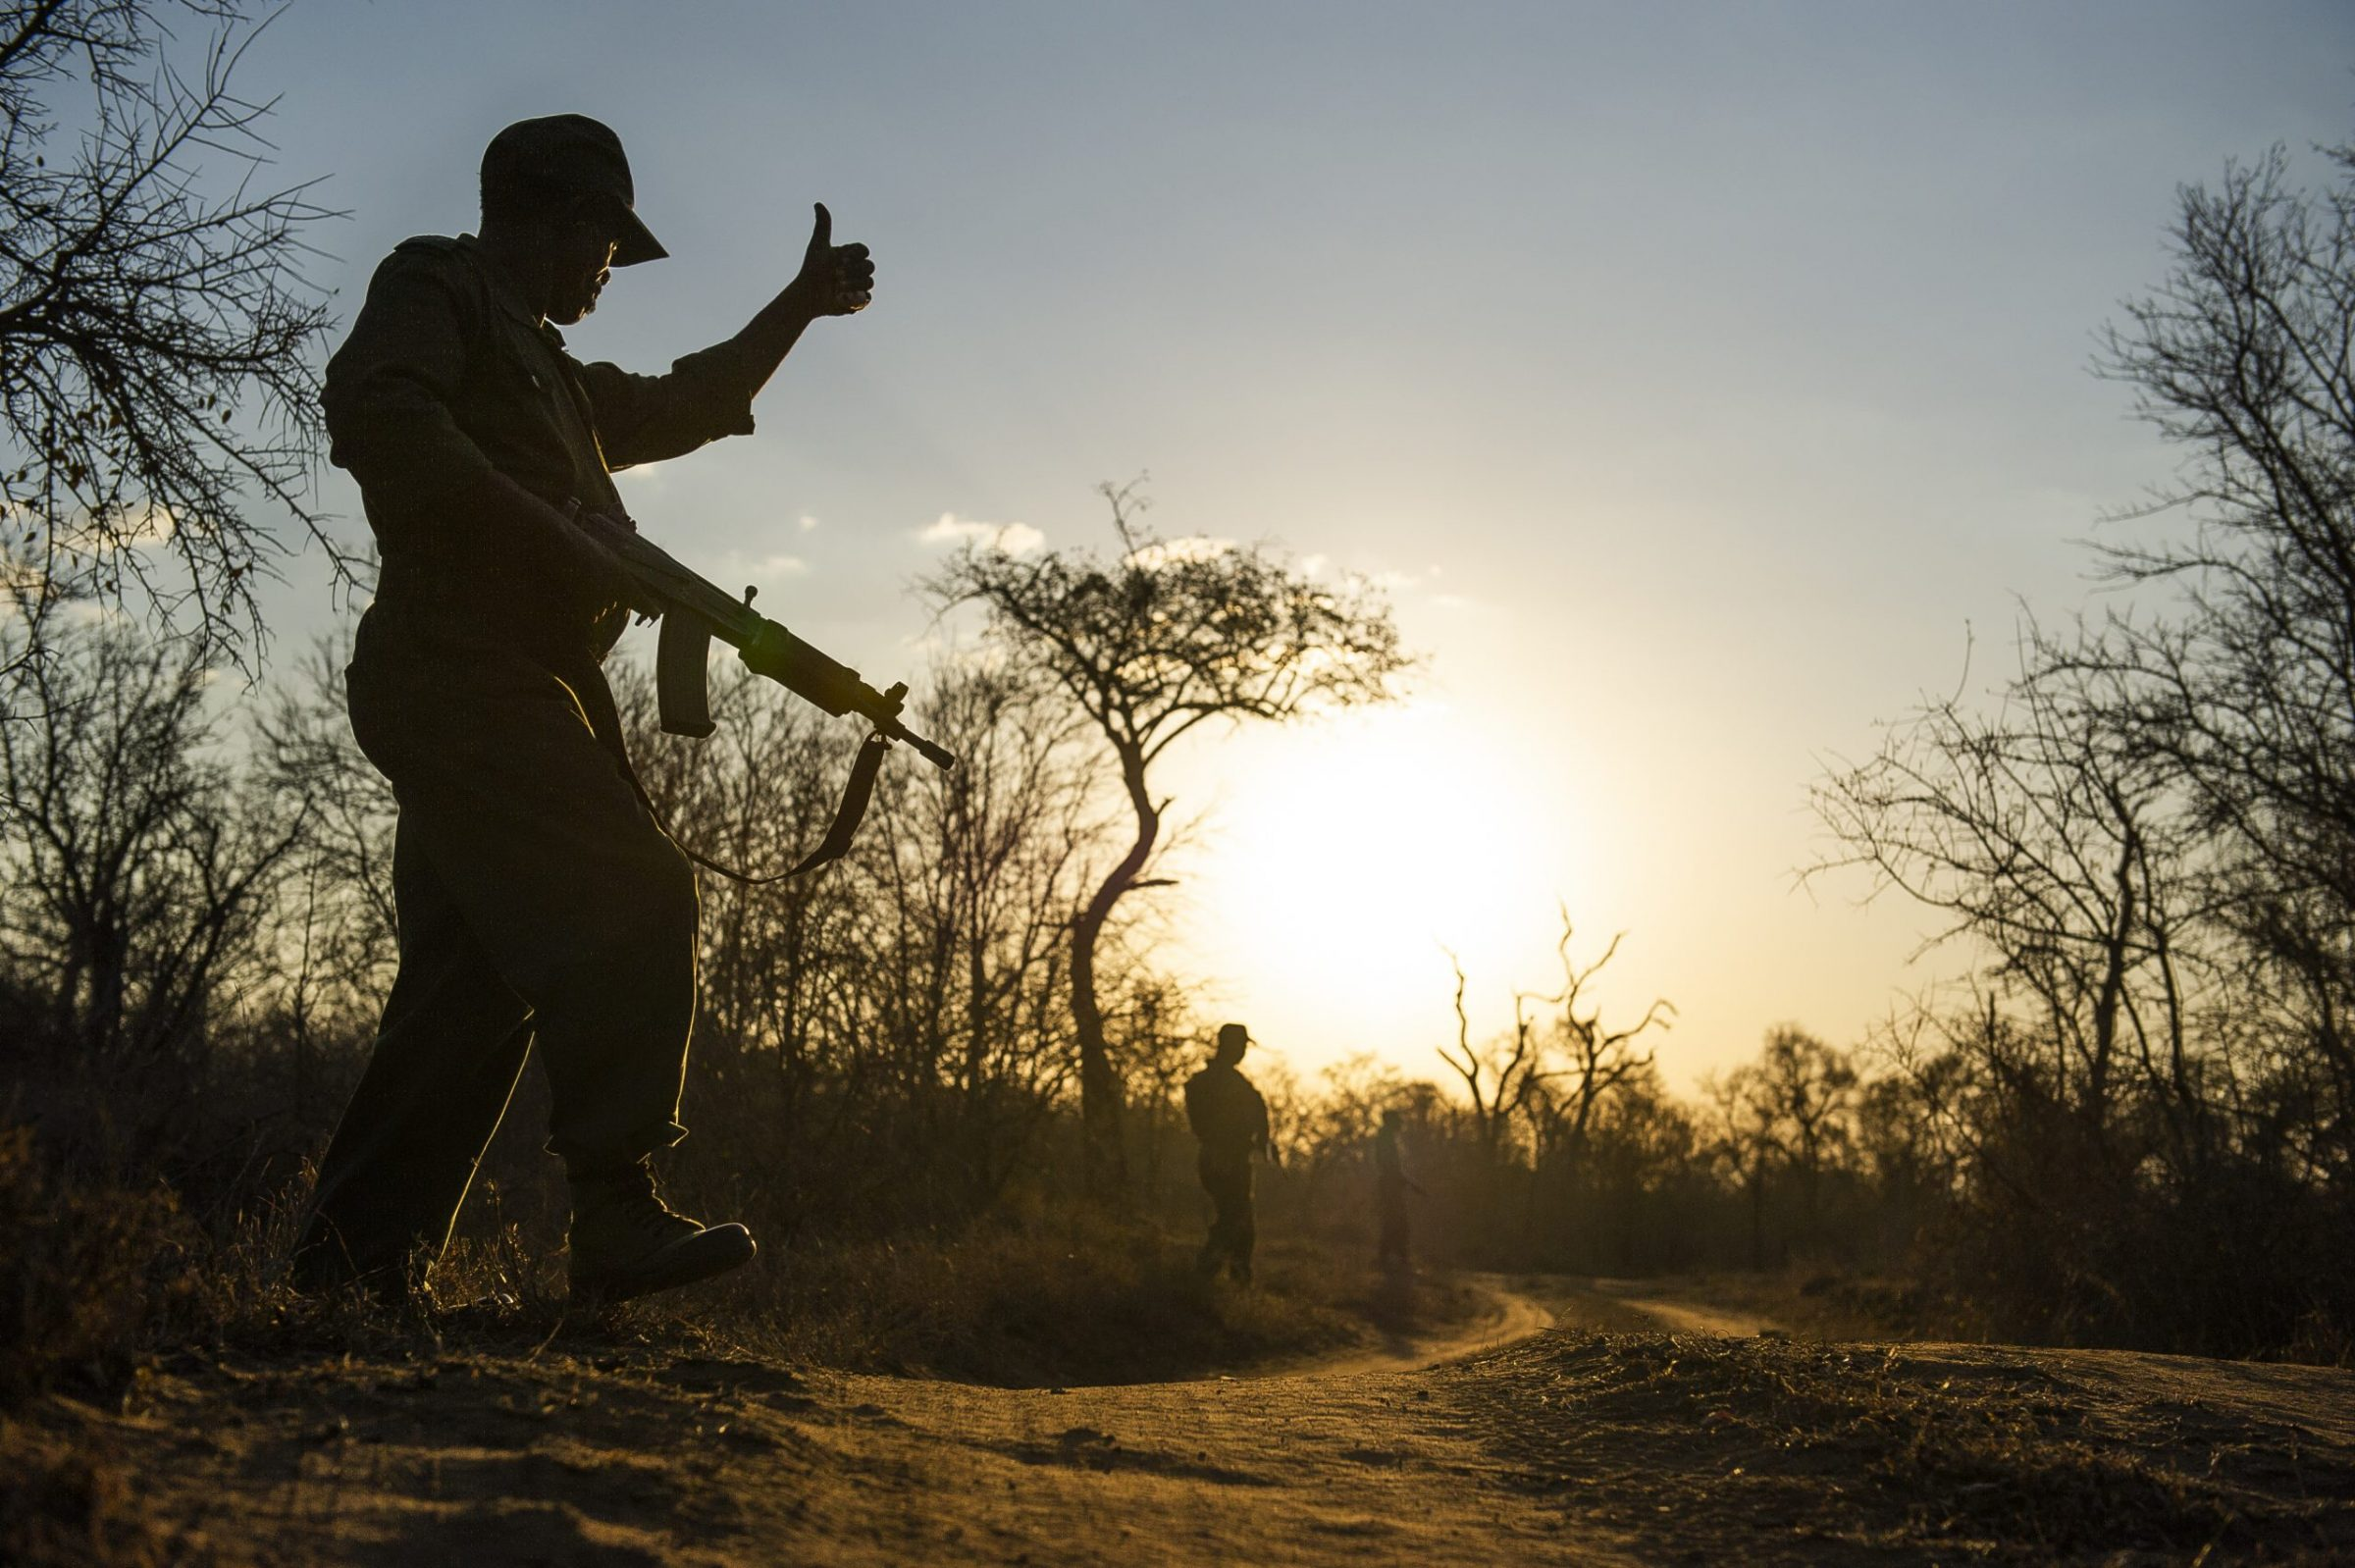 Rangers patrol an area in search of rhino poachers in Hlane Royal National Park, Swaziland.